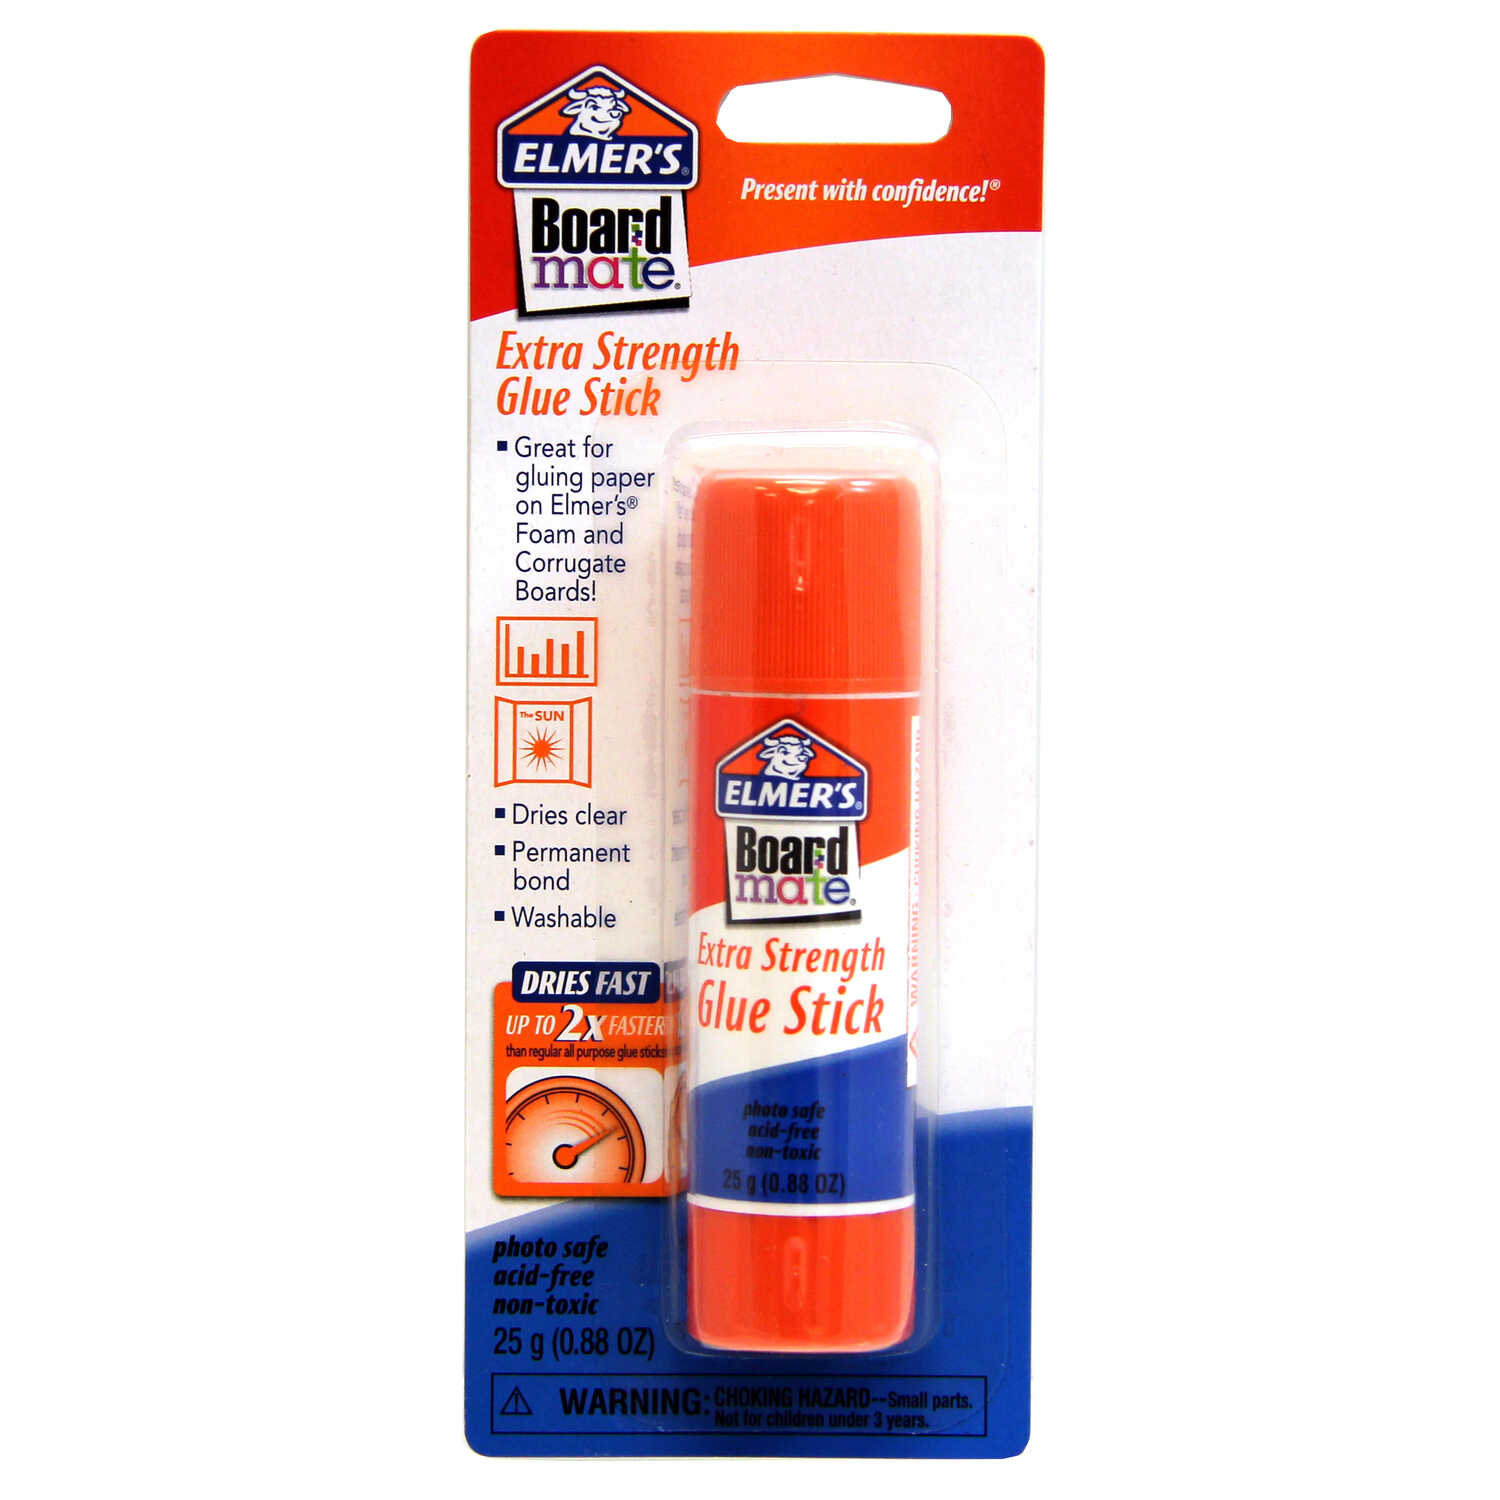 Elmer's  BoardMate Extra Strength  Medium Strength  Polyvinyl acetate homopolymer  Glue Stick  25